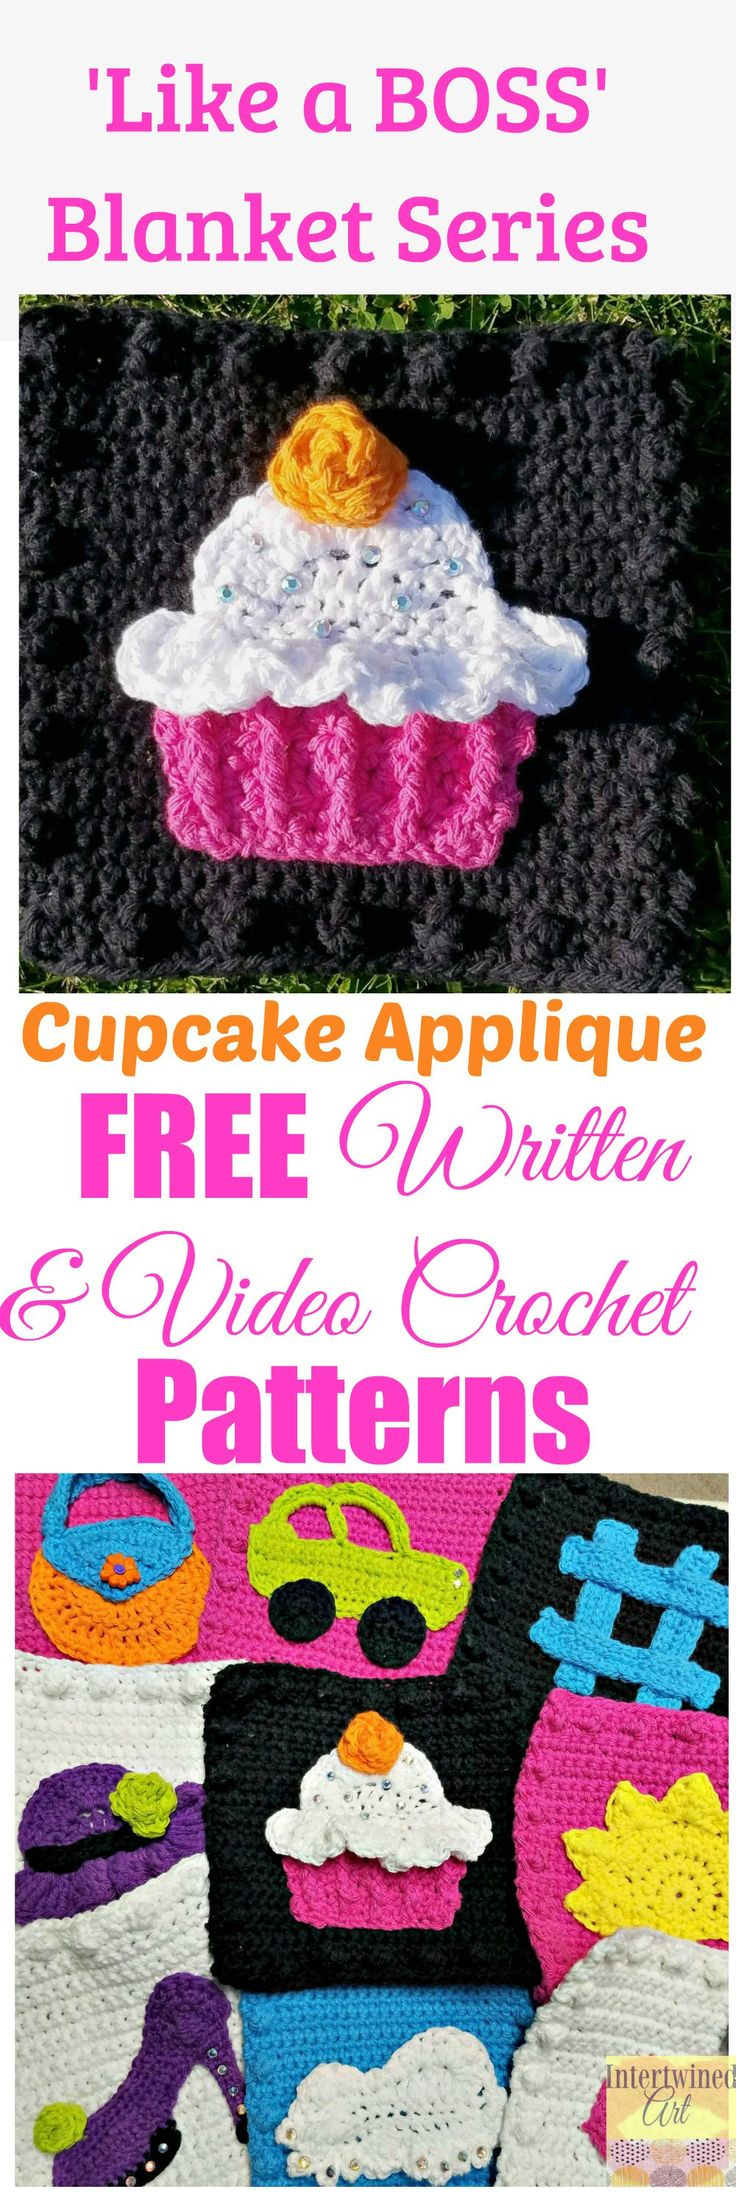 Best 25 crochet cupcake ideas on pinterest crochet stitches crochet cupcake square like a boss blanket series bankloansurffo Image collections